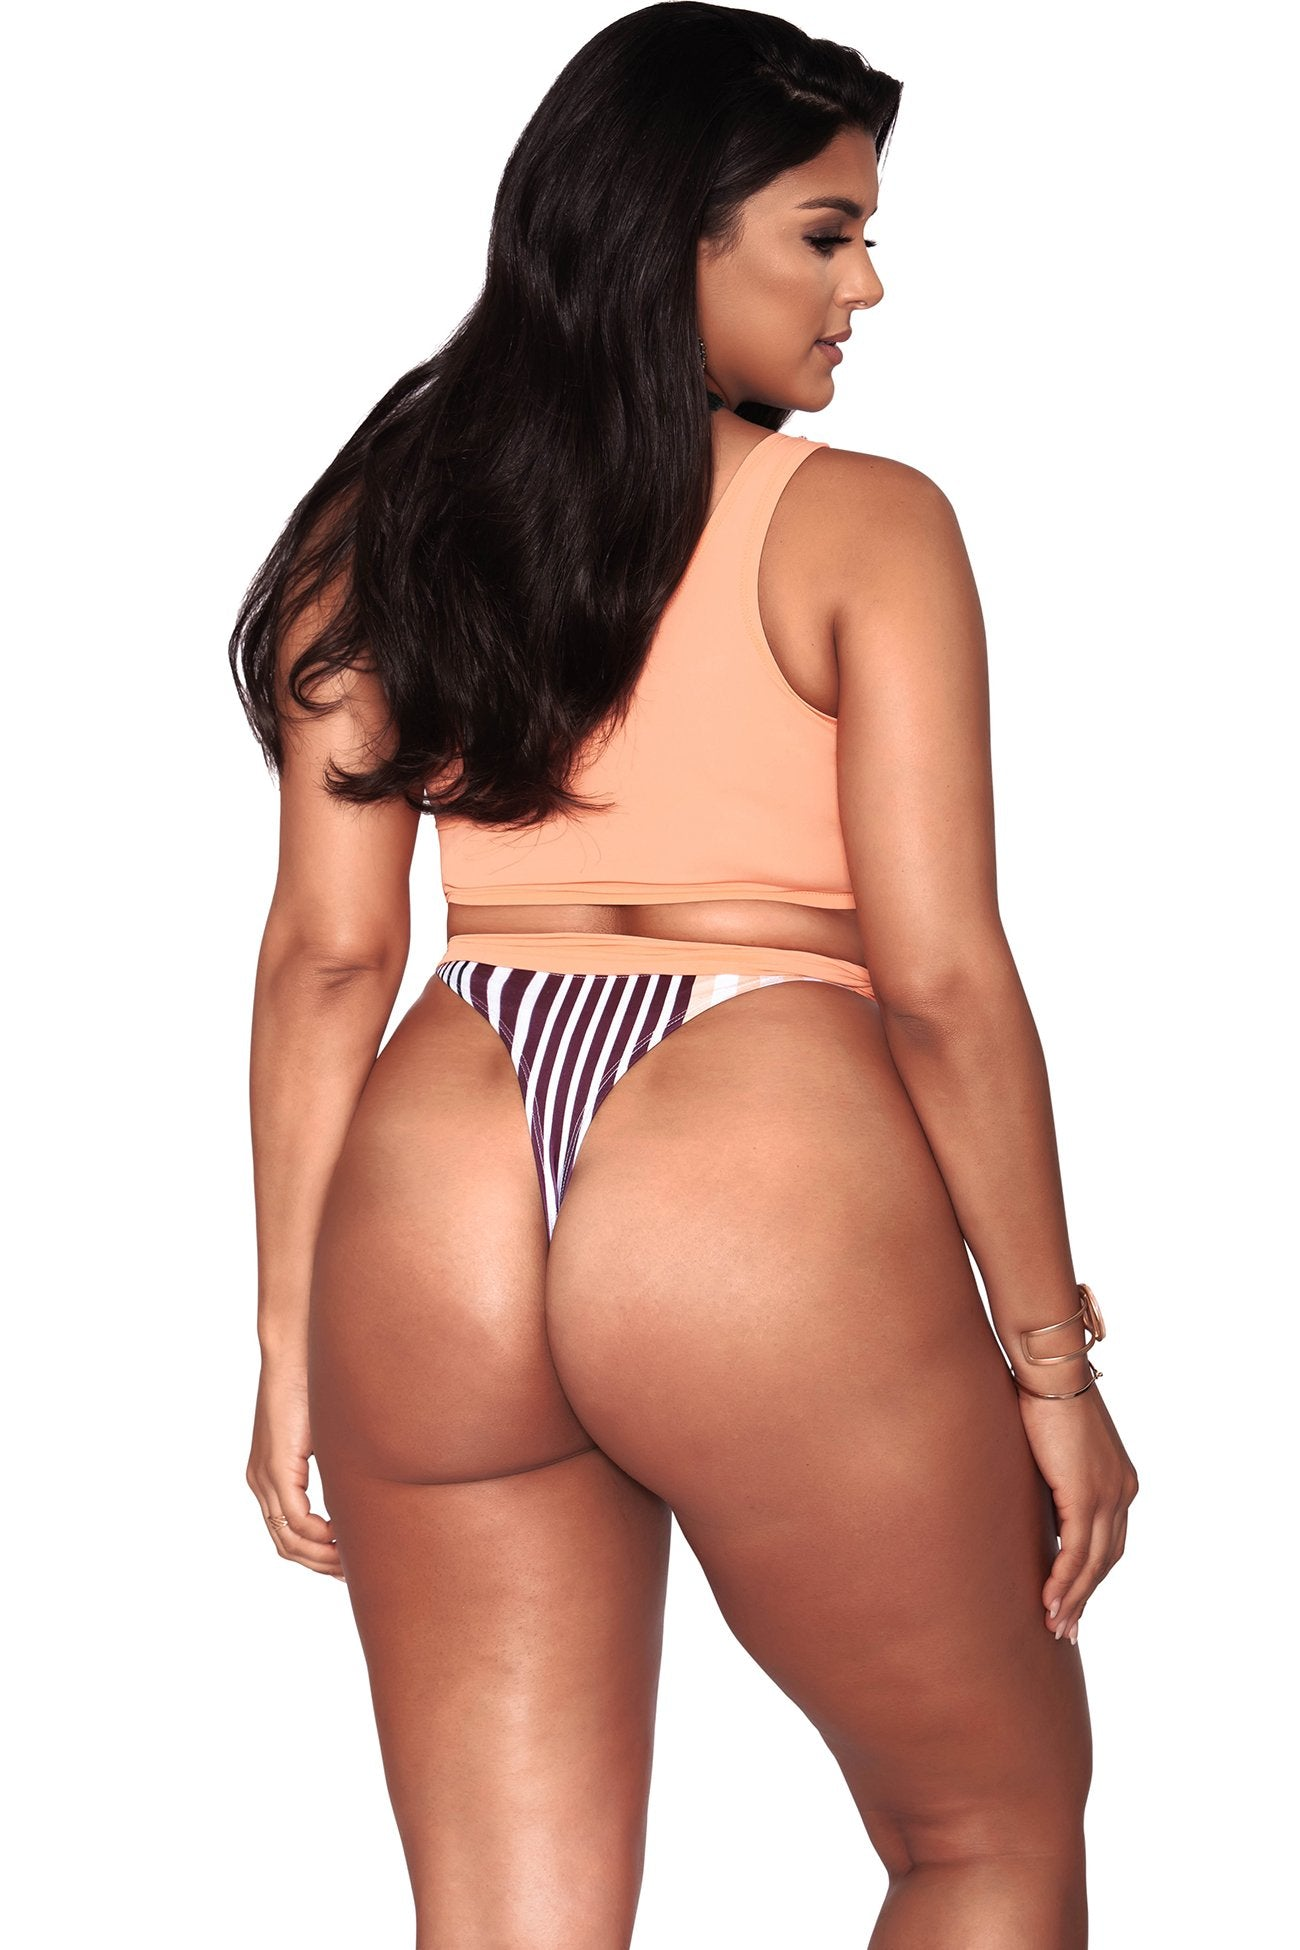 Alexis Bikini Bottom- Minimal Coverage - Peach Stripes